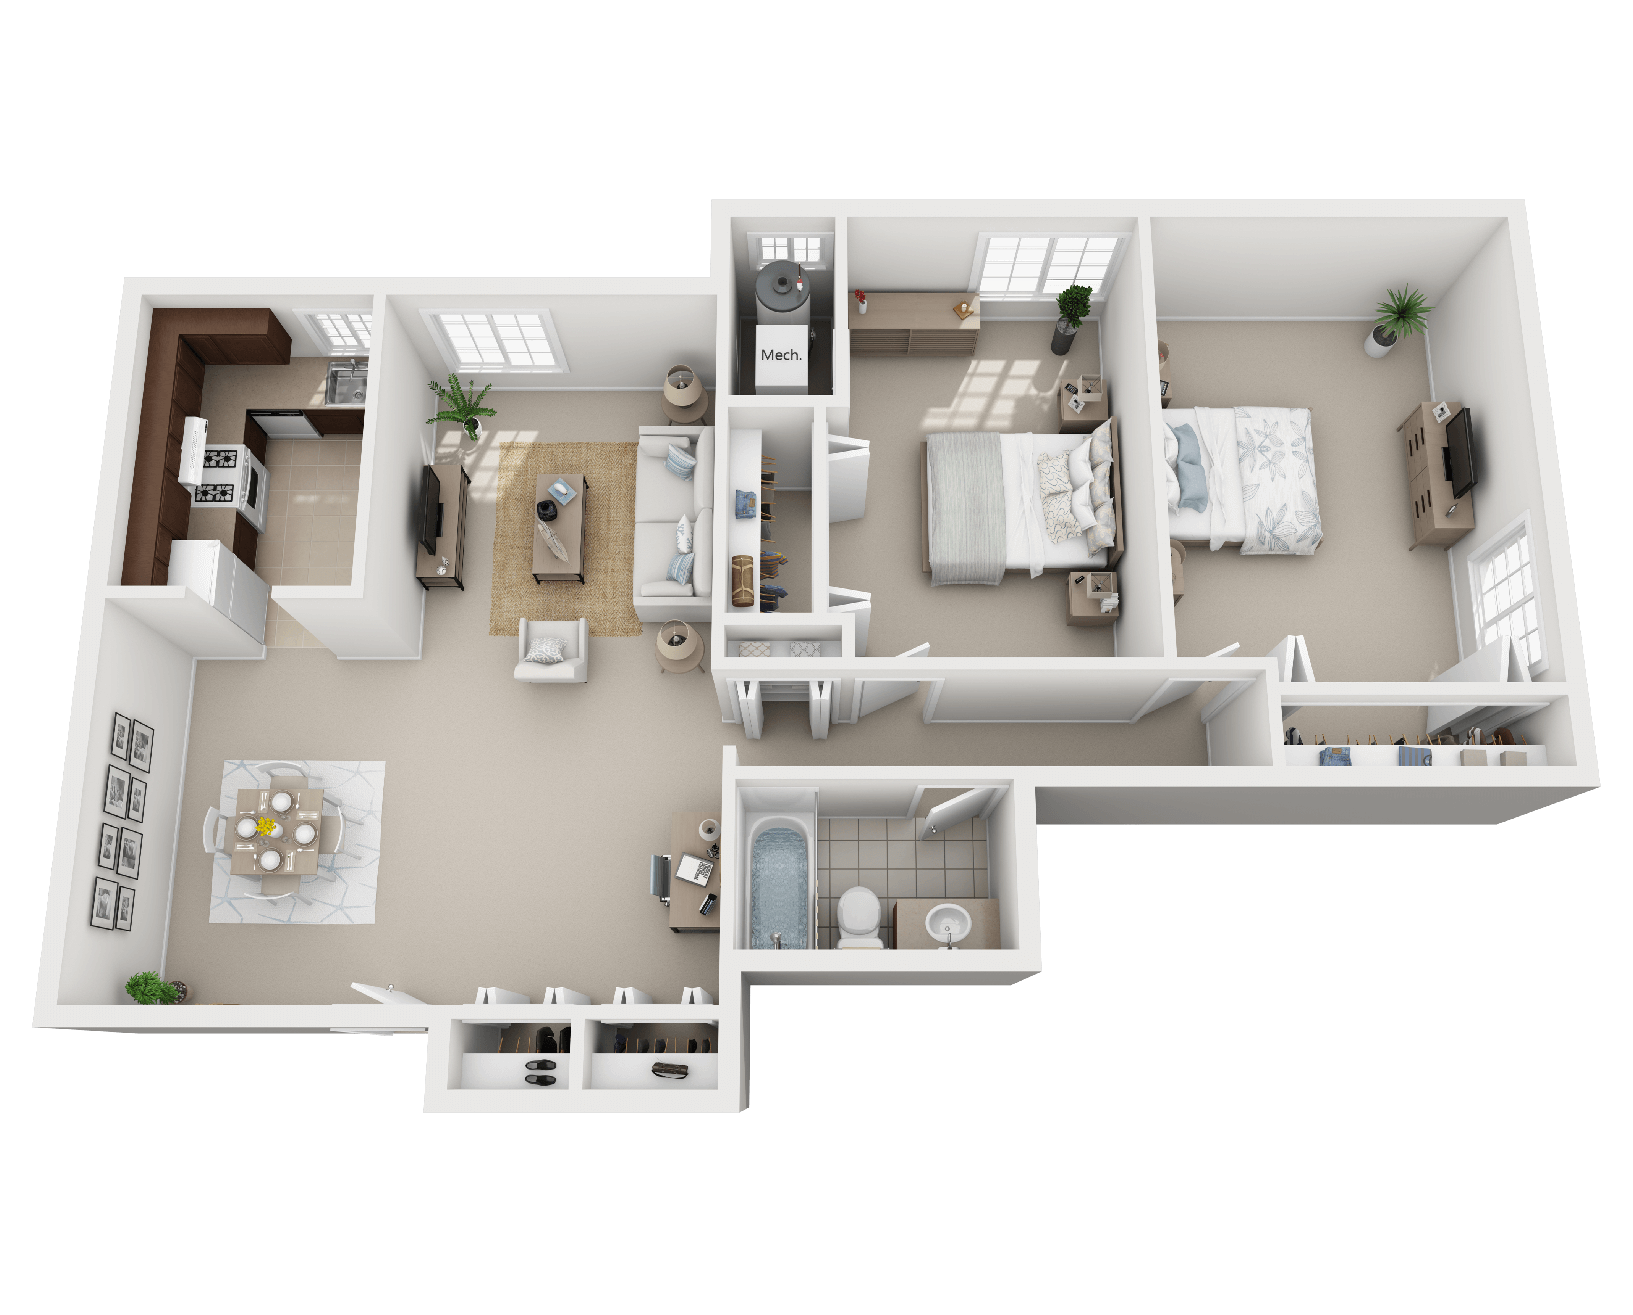 Lake Shore Park Apartments - 2 Bedroom, 1 Bath (Layout B)